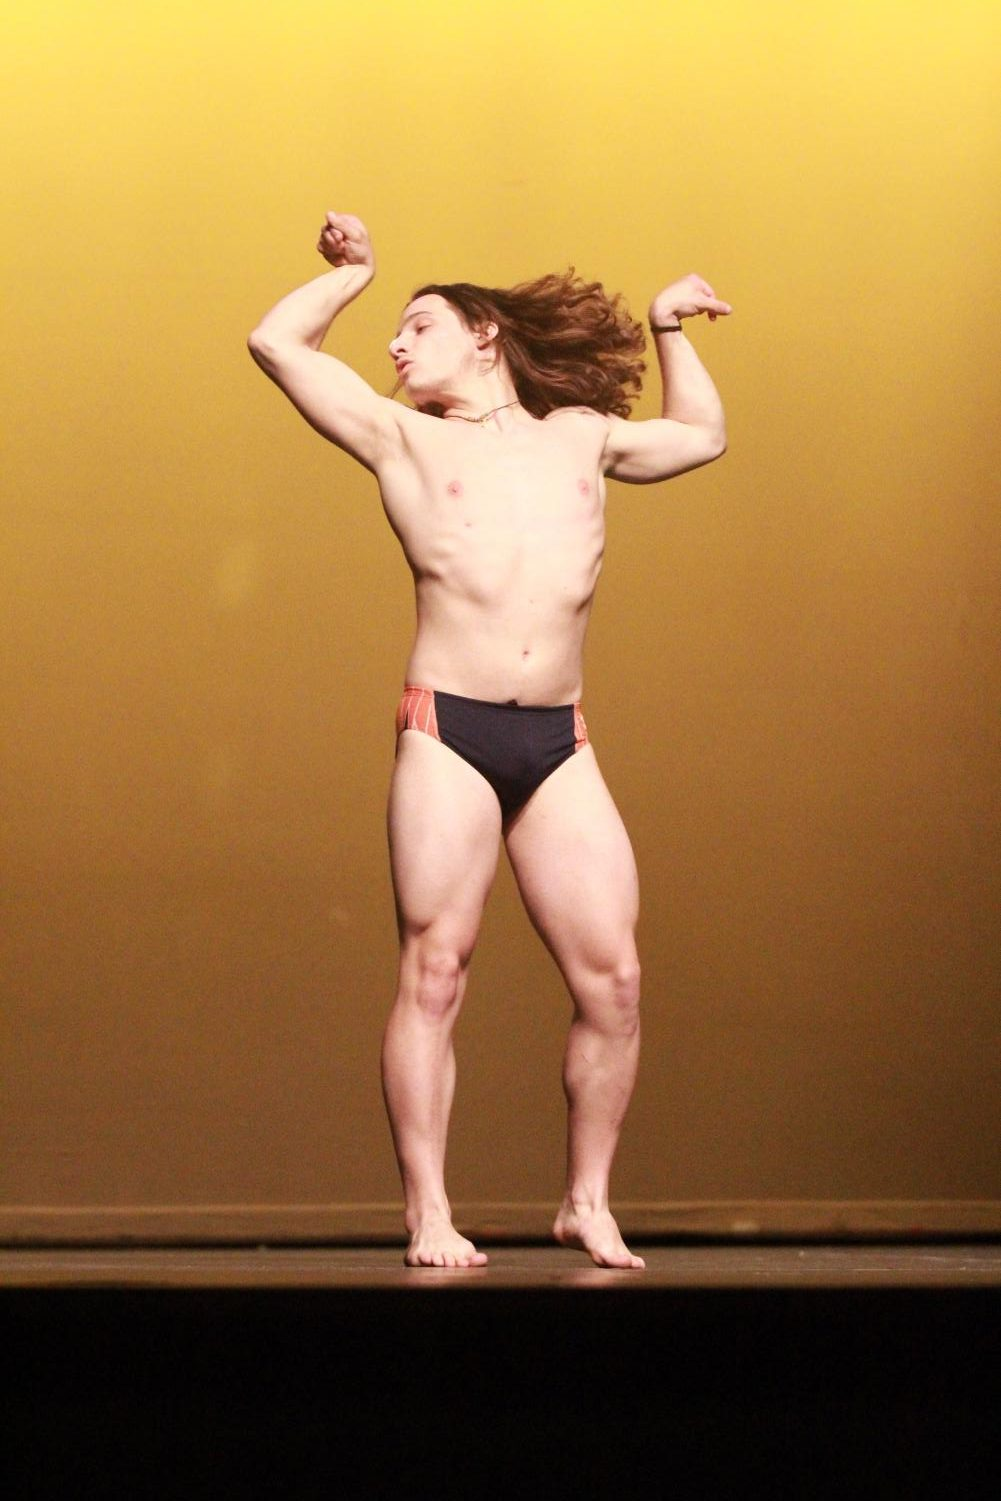 Senior+Brennan+Guilds+showing+off+his+luscious+locks+and+swimmer-bod+during+the+swimsuit+portion+of+the+Mr.+Watkins+Mill+contest.